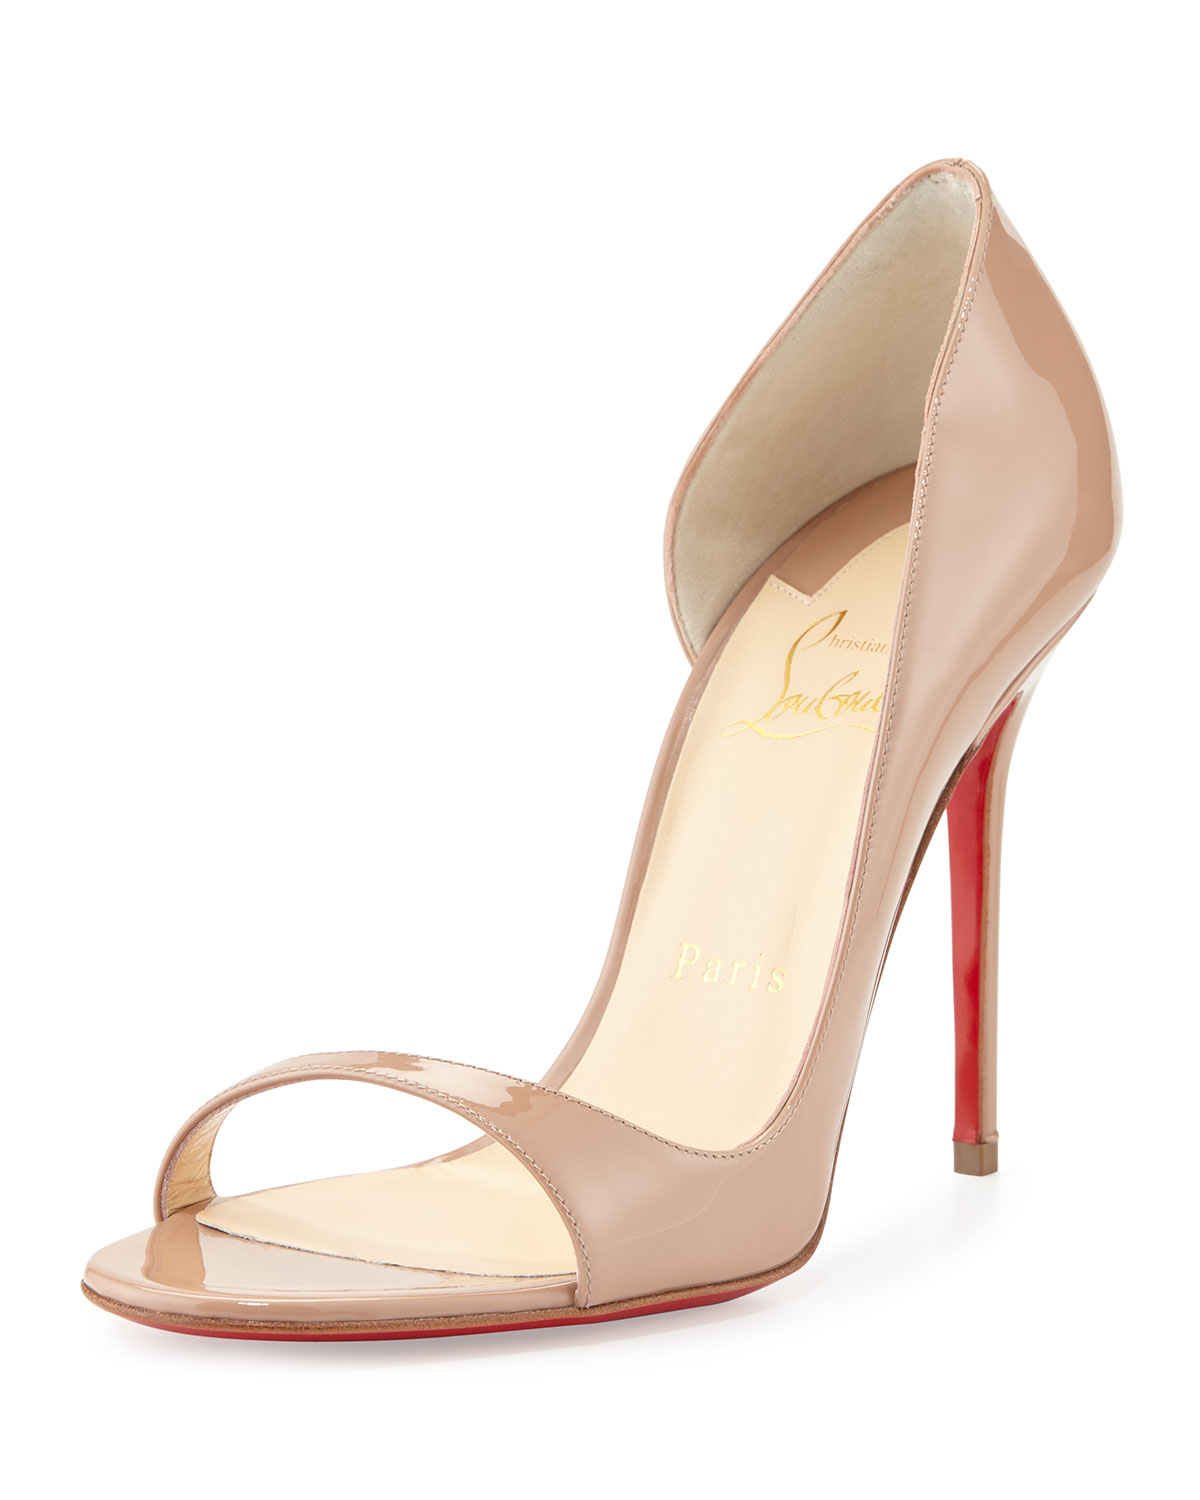 replica christian louboutin boots - Christian louboutin Toboggan Half-d'orsay Red Sole Pump in Beige ...